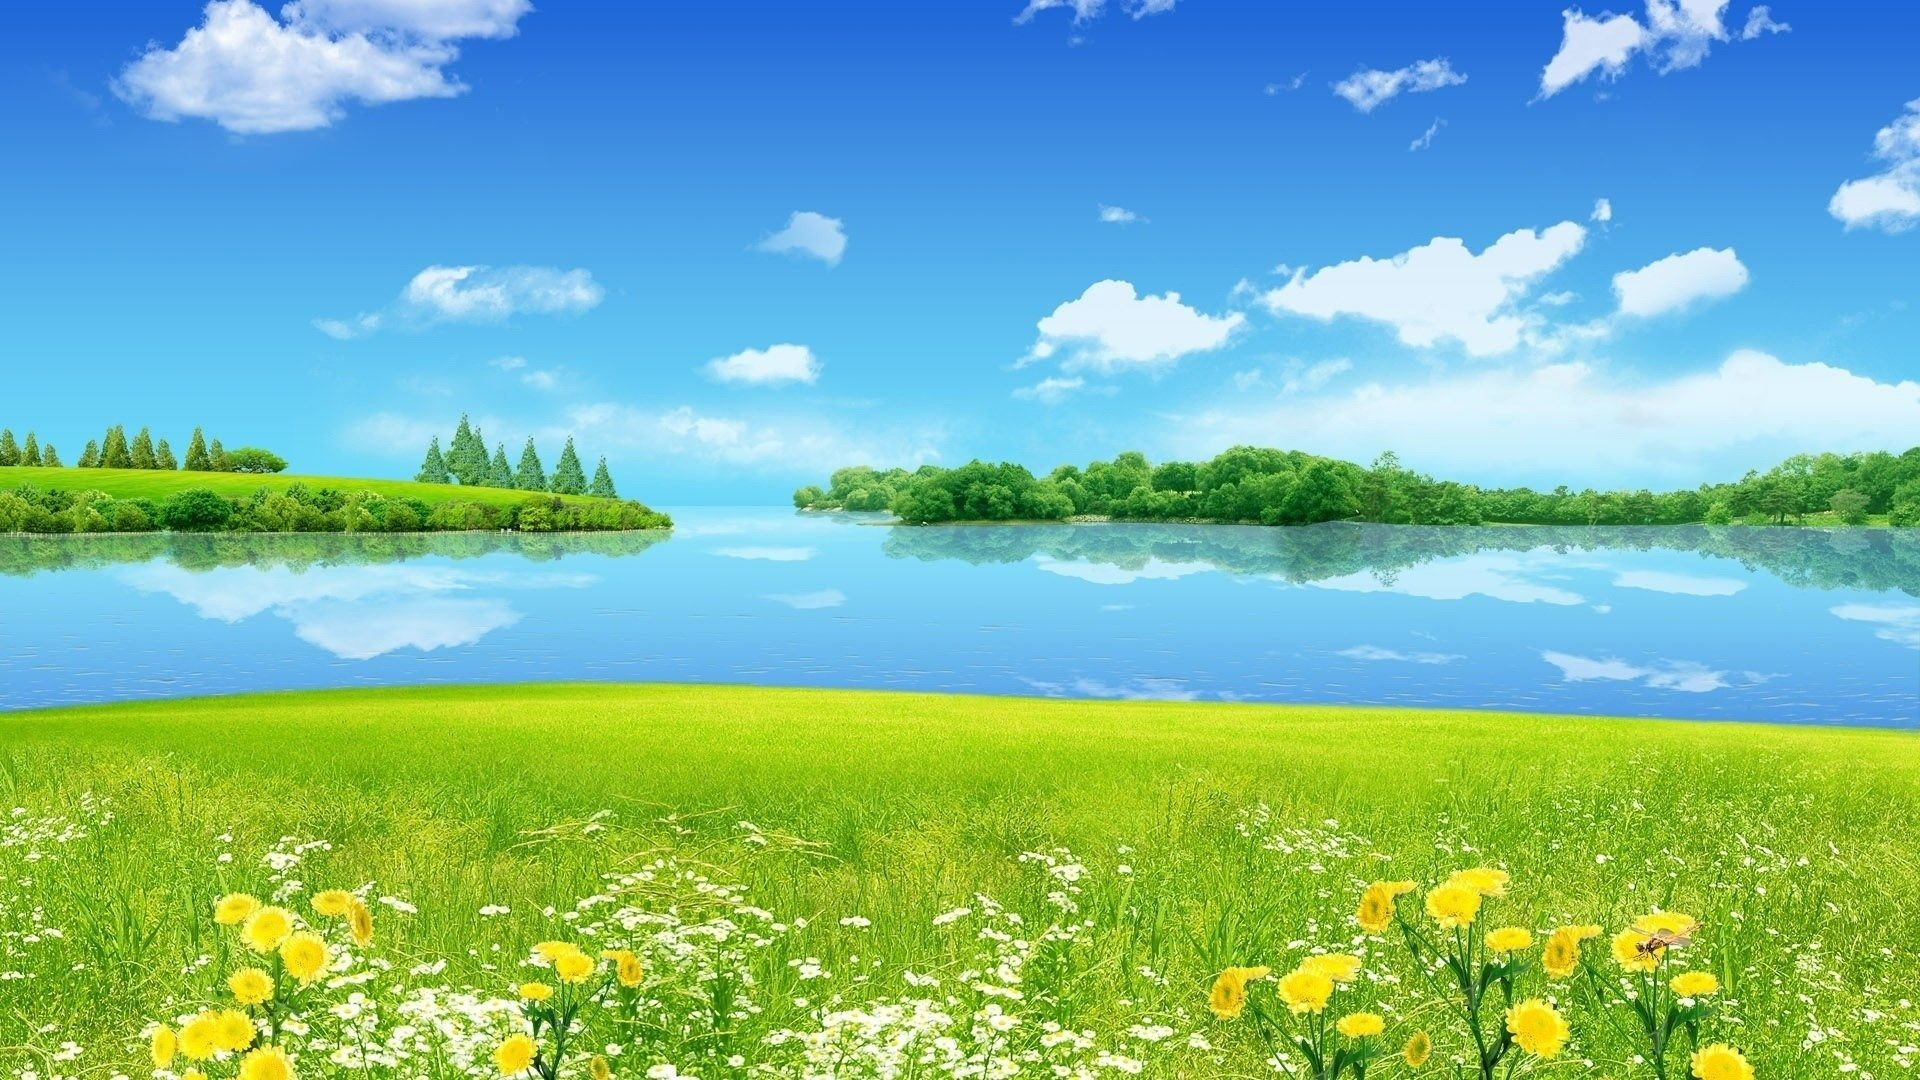 Summer Vacation Backgrounds Wallpapers Web Gallery Summer Vacation